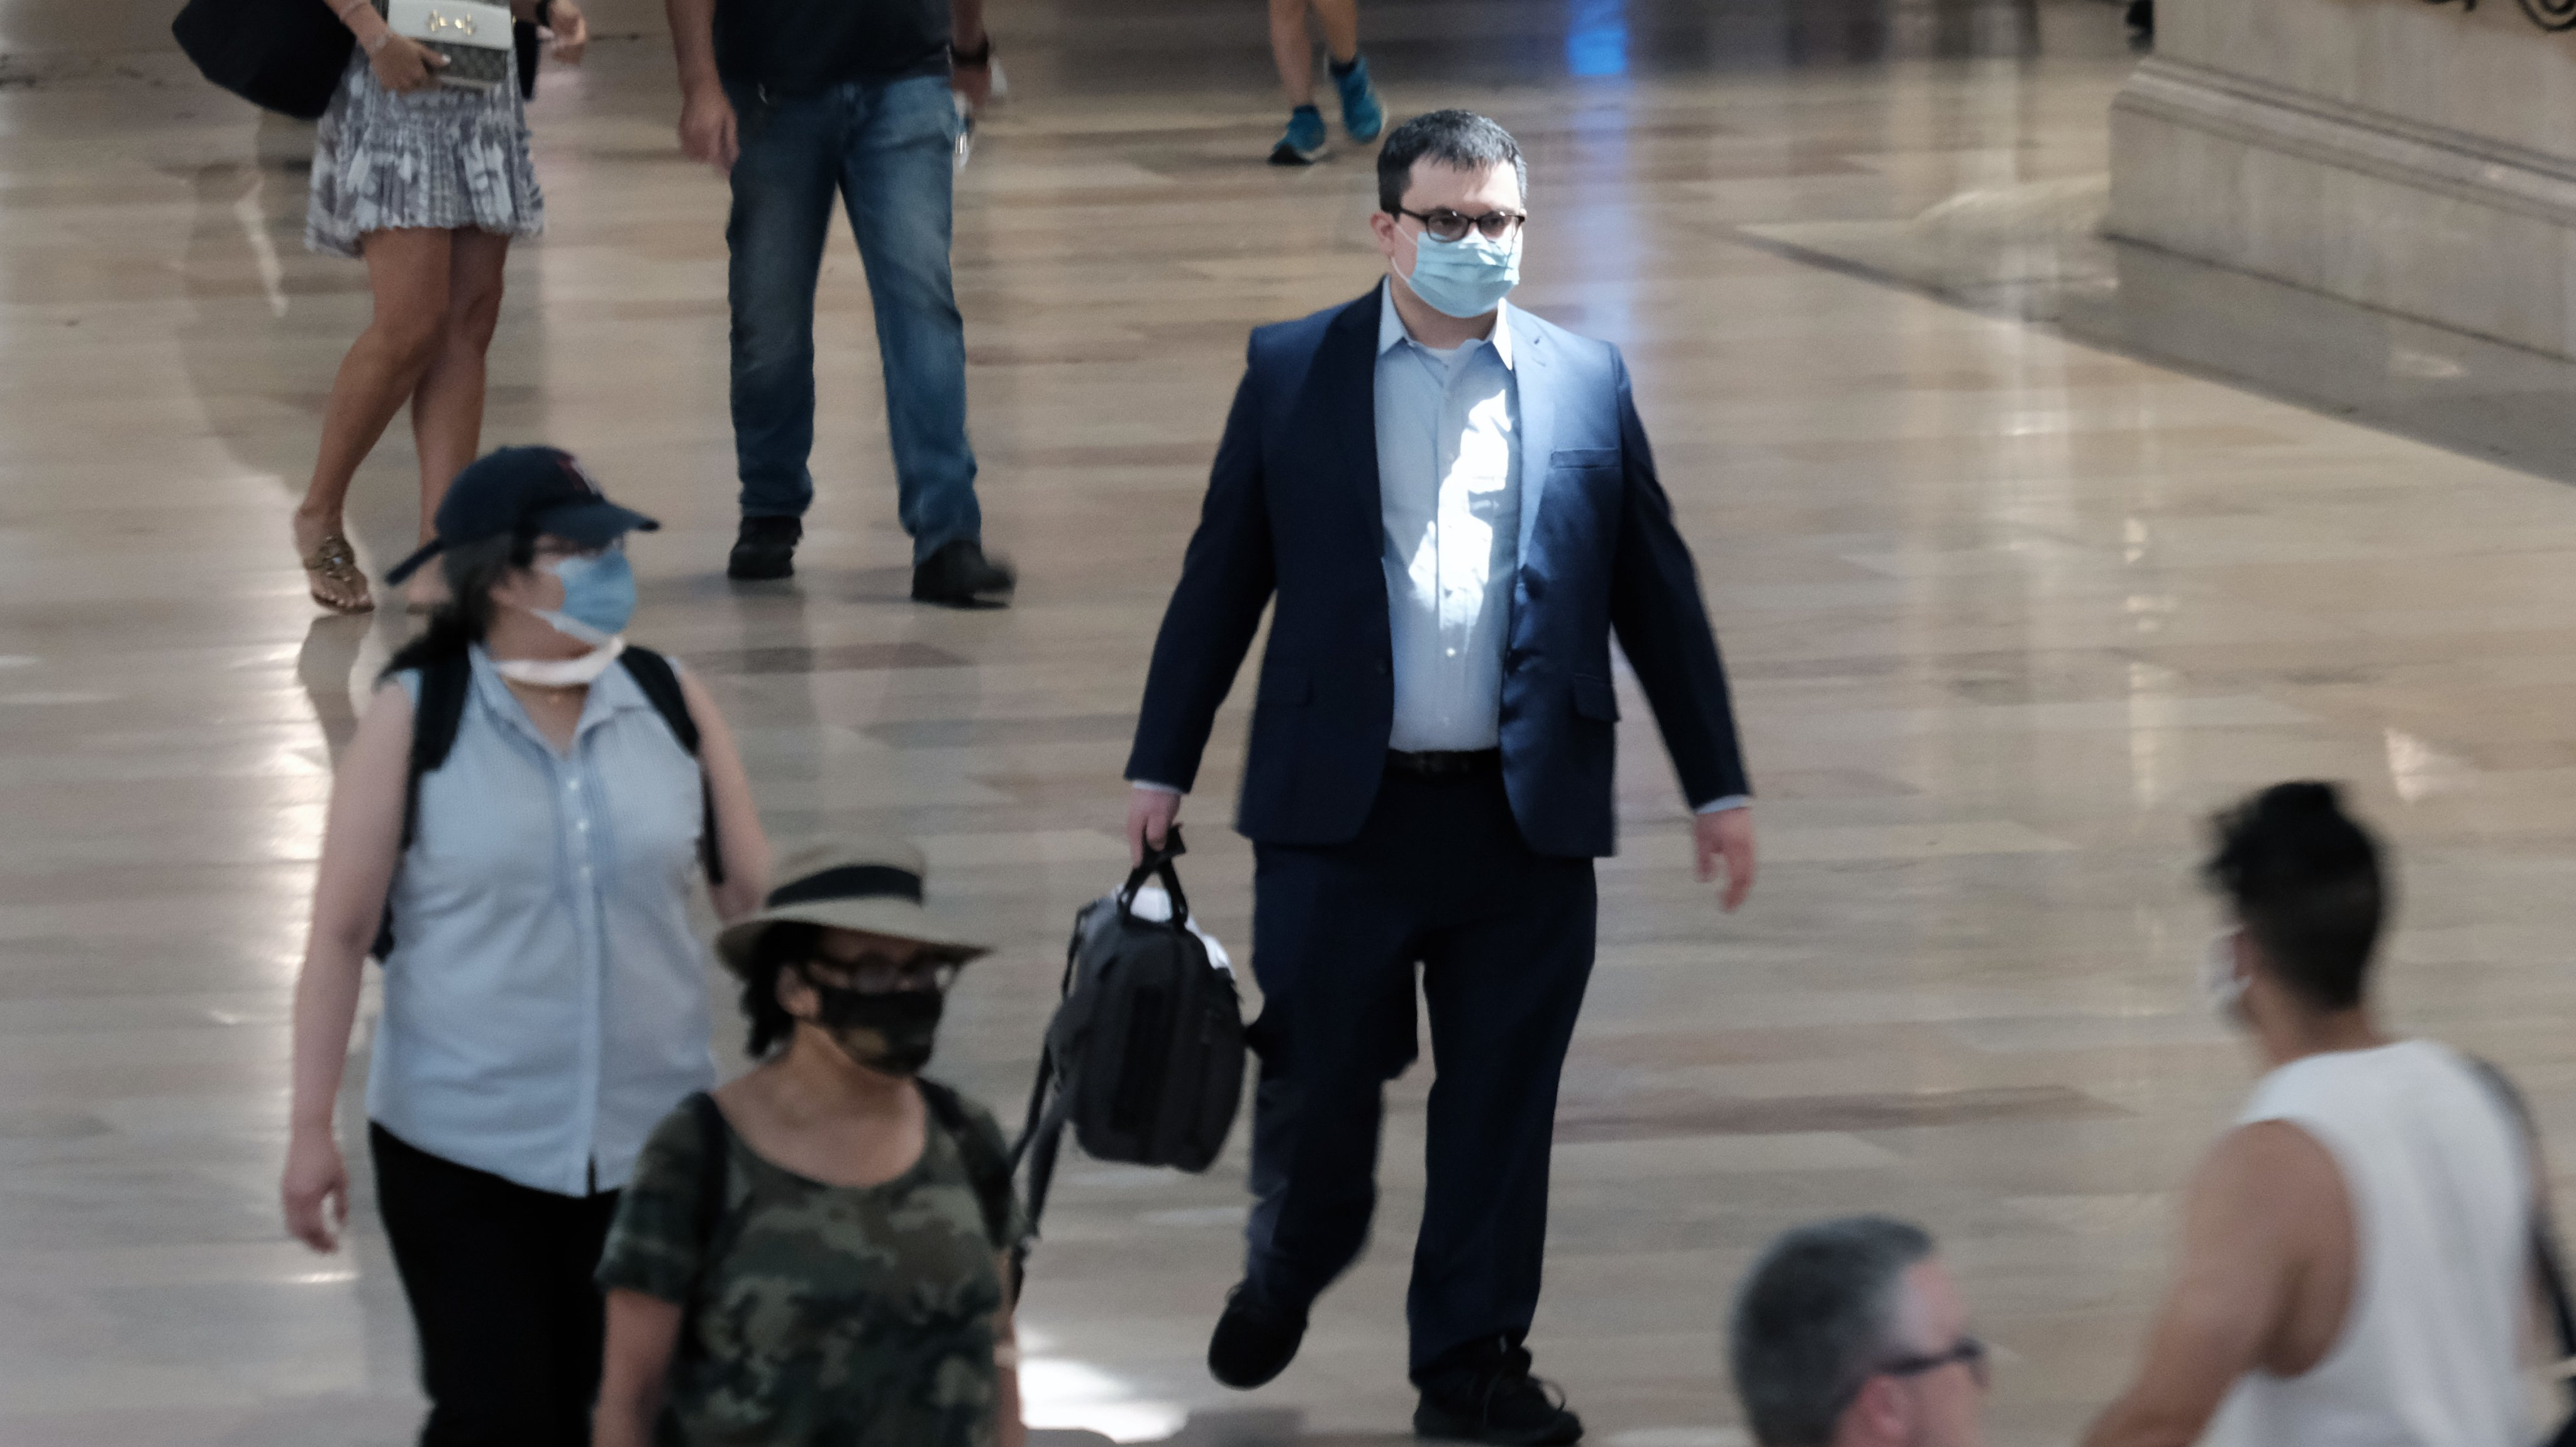 Reinstating Mask Mandates Debated Across Country As Cases Of Covid-19 Rise